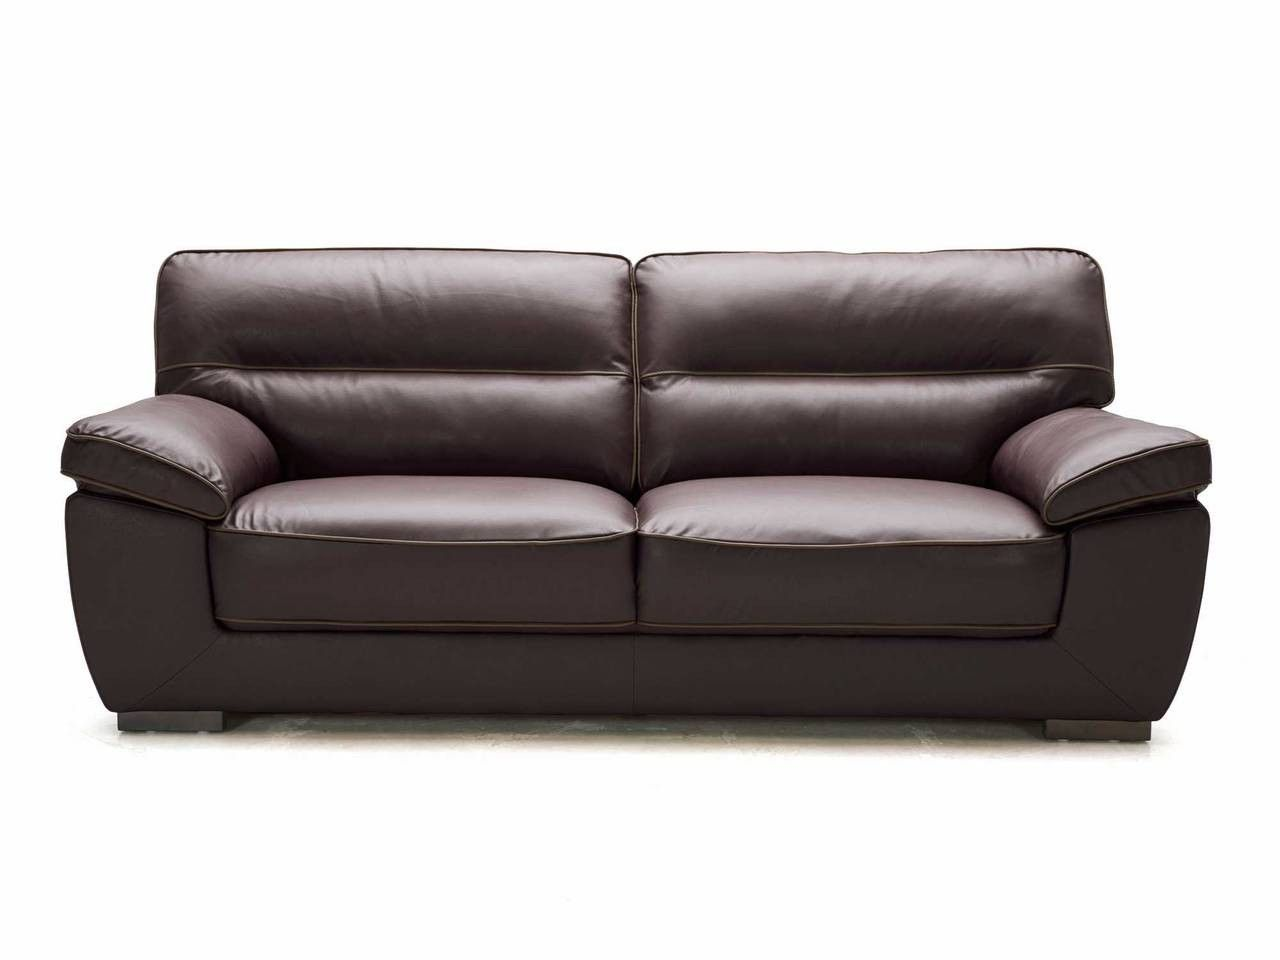 30 Meilleur Canape Chesterfield Tissu Recommandations In 2020